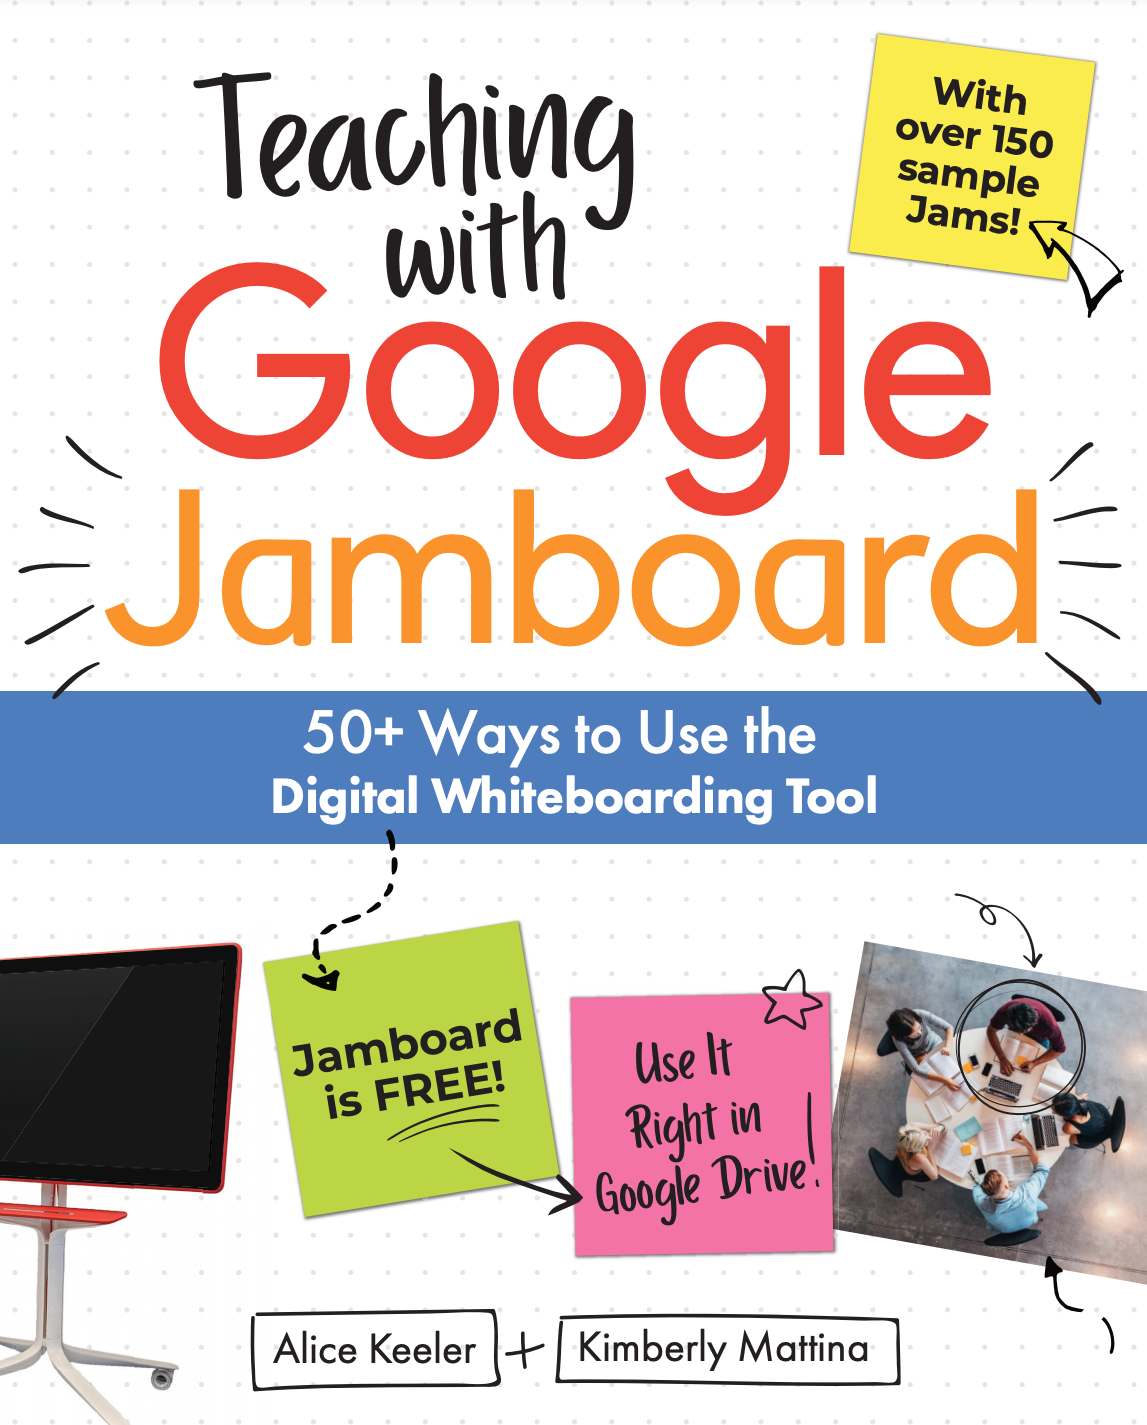 Alice Keeler and Kim Mattina are about to release their second book together about more than 50 ways to use Google Jamboard!